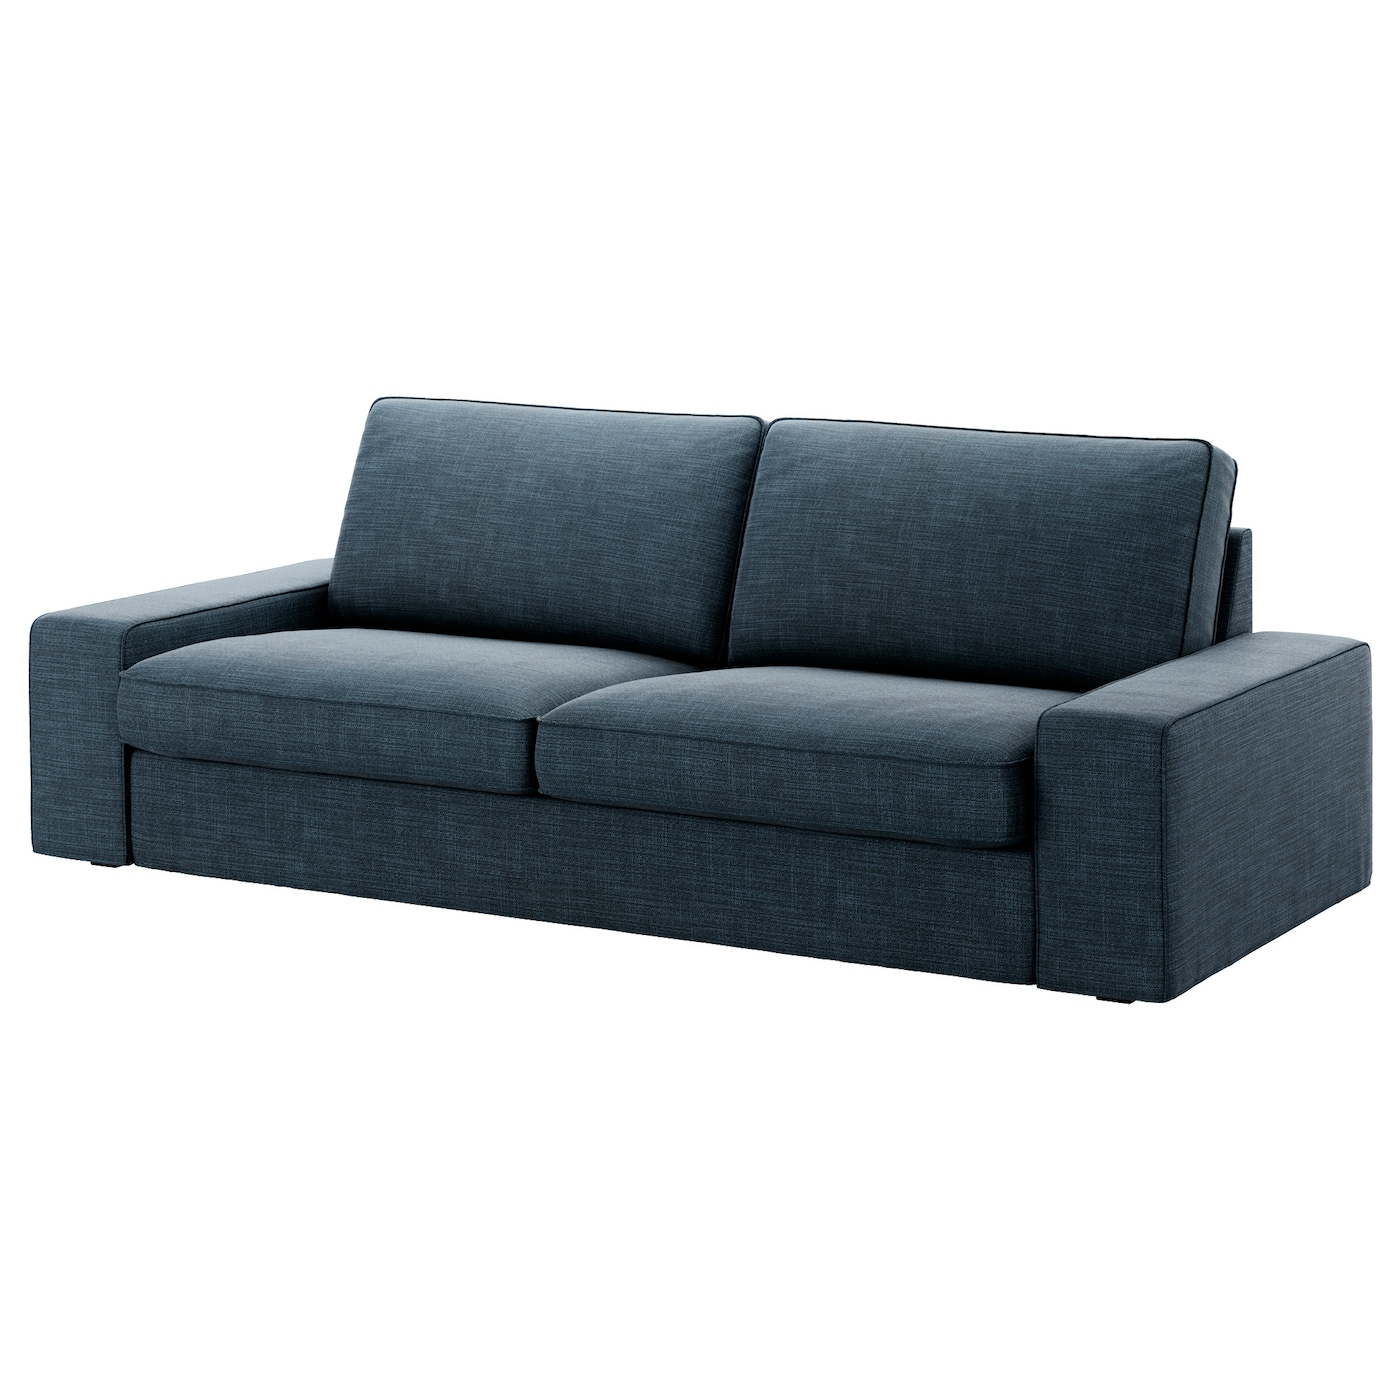 kivik three seat sofa hillared dark blue ikea. Black Bedroom Furniture Sets. Home Design Ideas